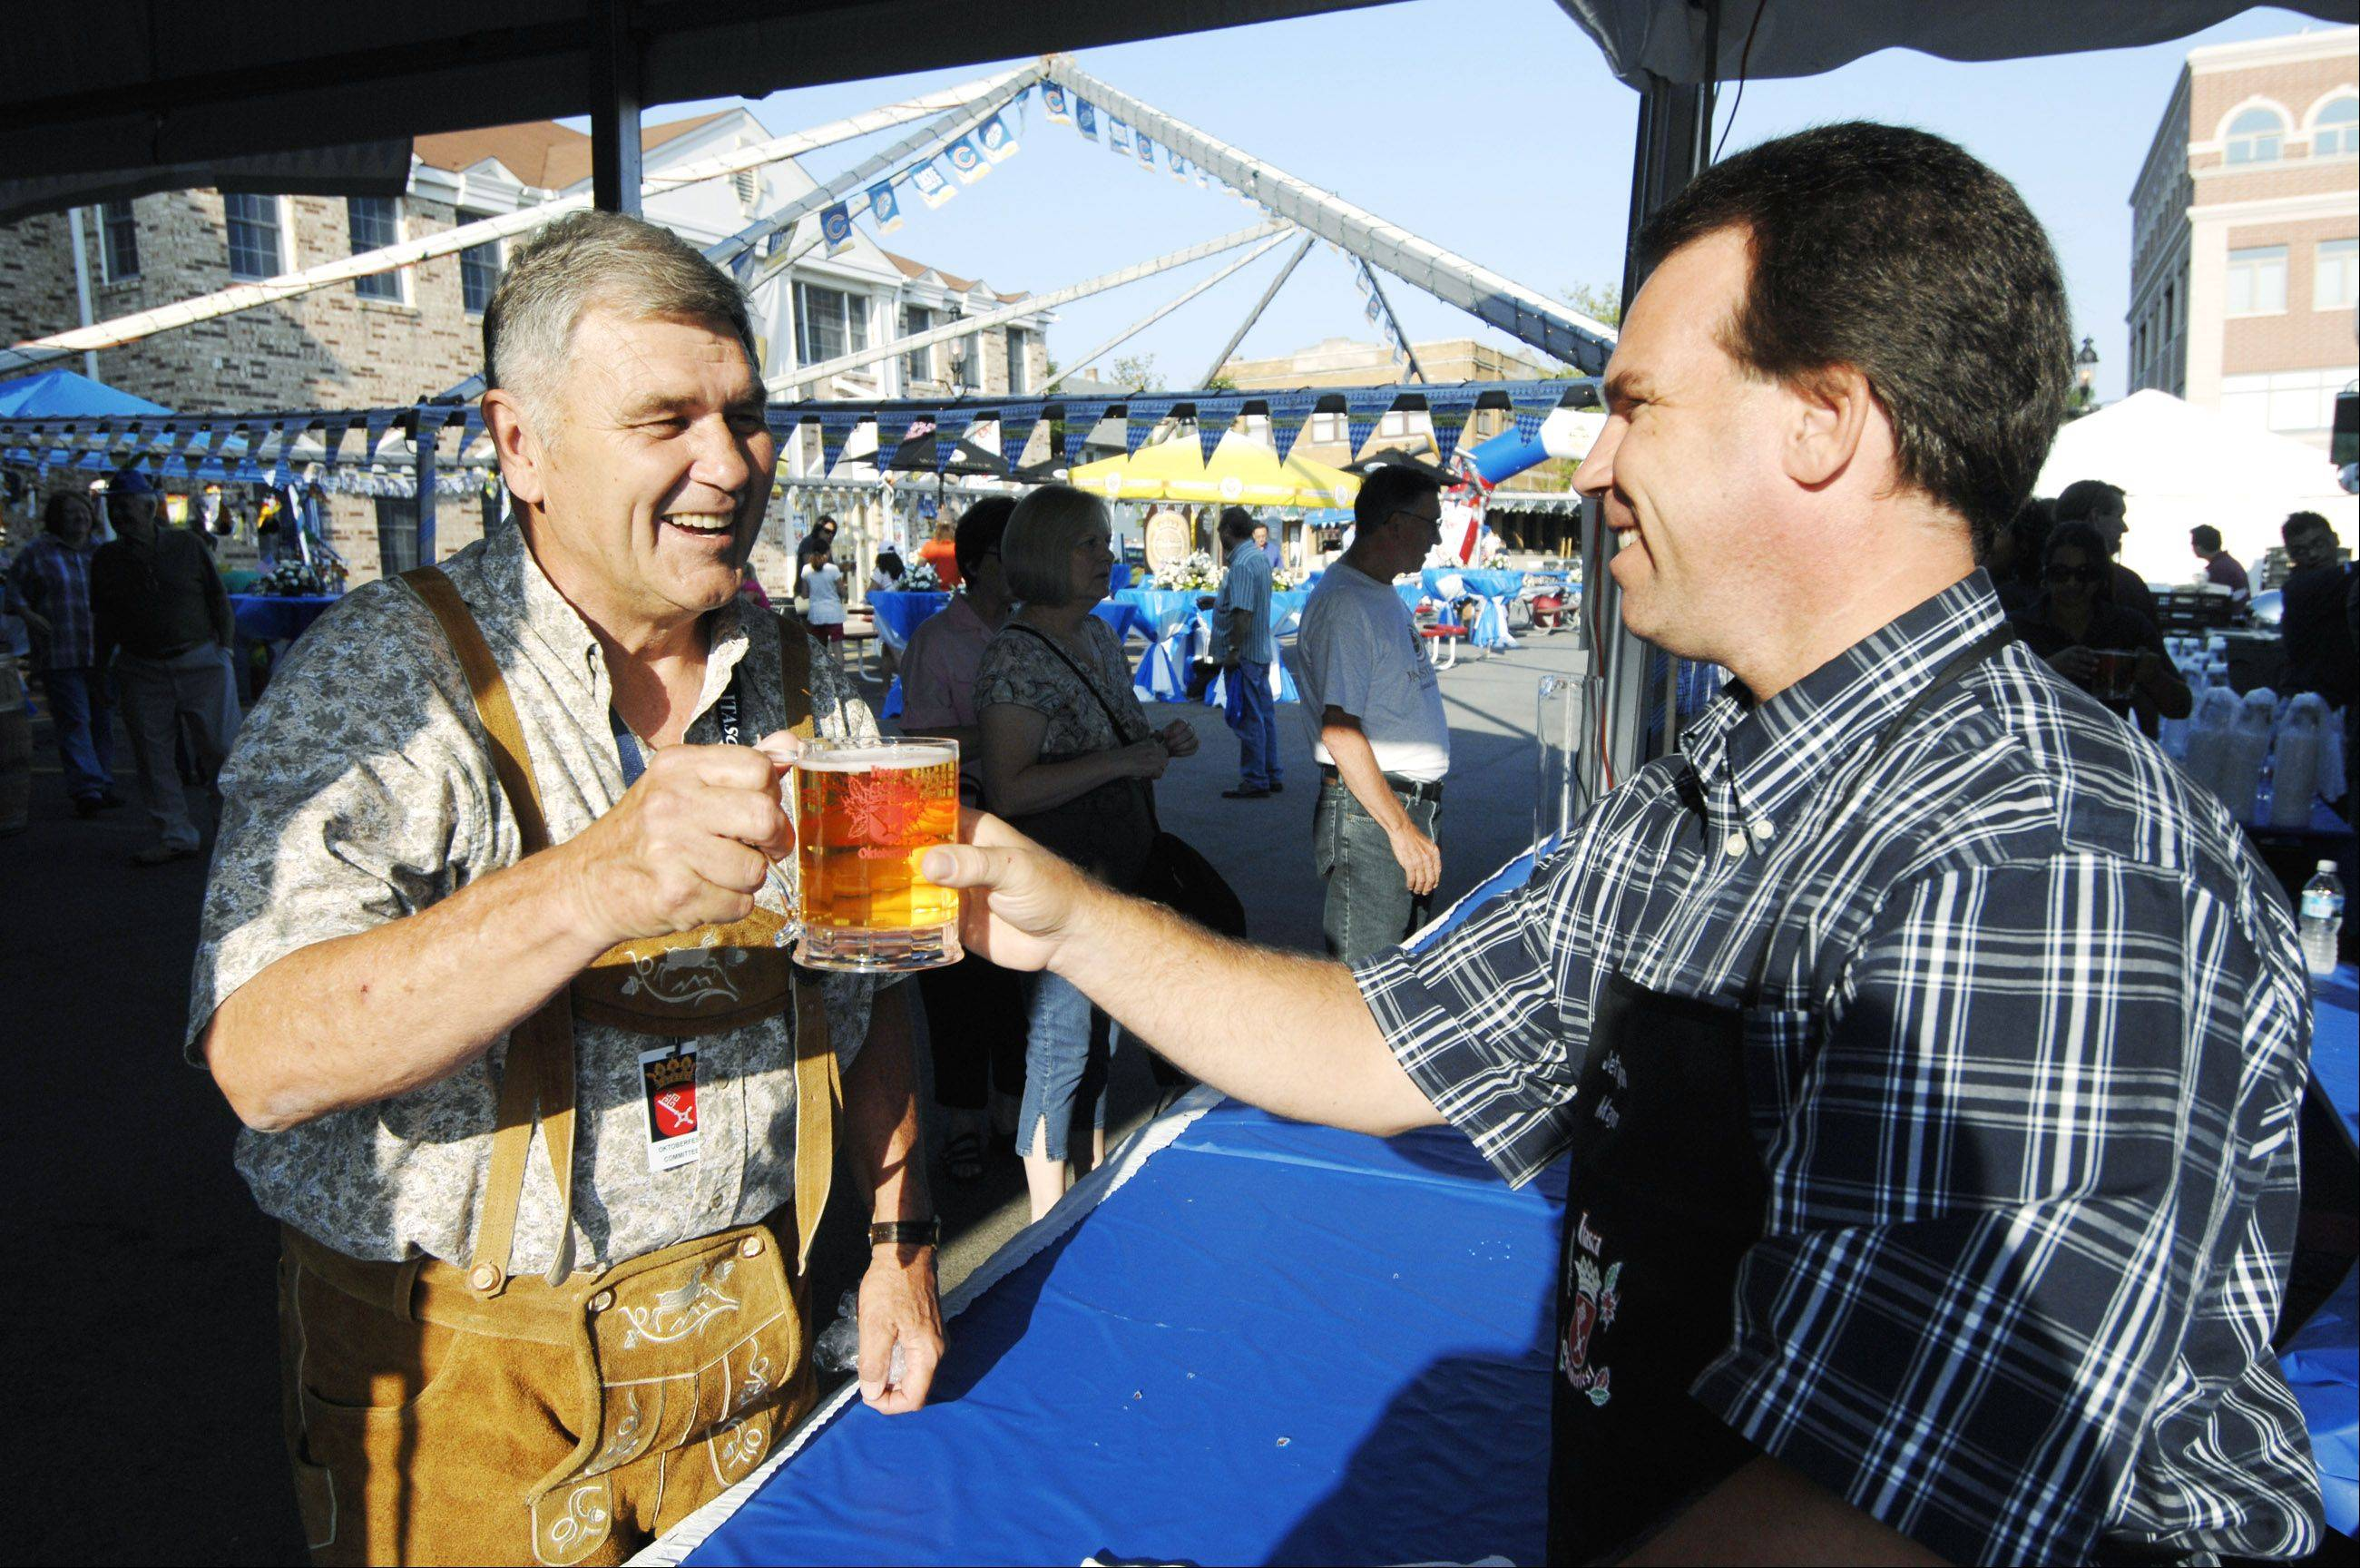 Itasca Mayor Jeff Pruyn, right, will tap the first keg of the village's Oktoberfest around 5 p.m. Friday to open the two-day festival. Event organizer Dan Kompanowski, left, says he bought lederhosen to fit in with the enthusiastic German crowd.